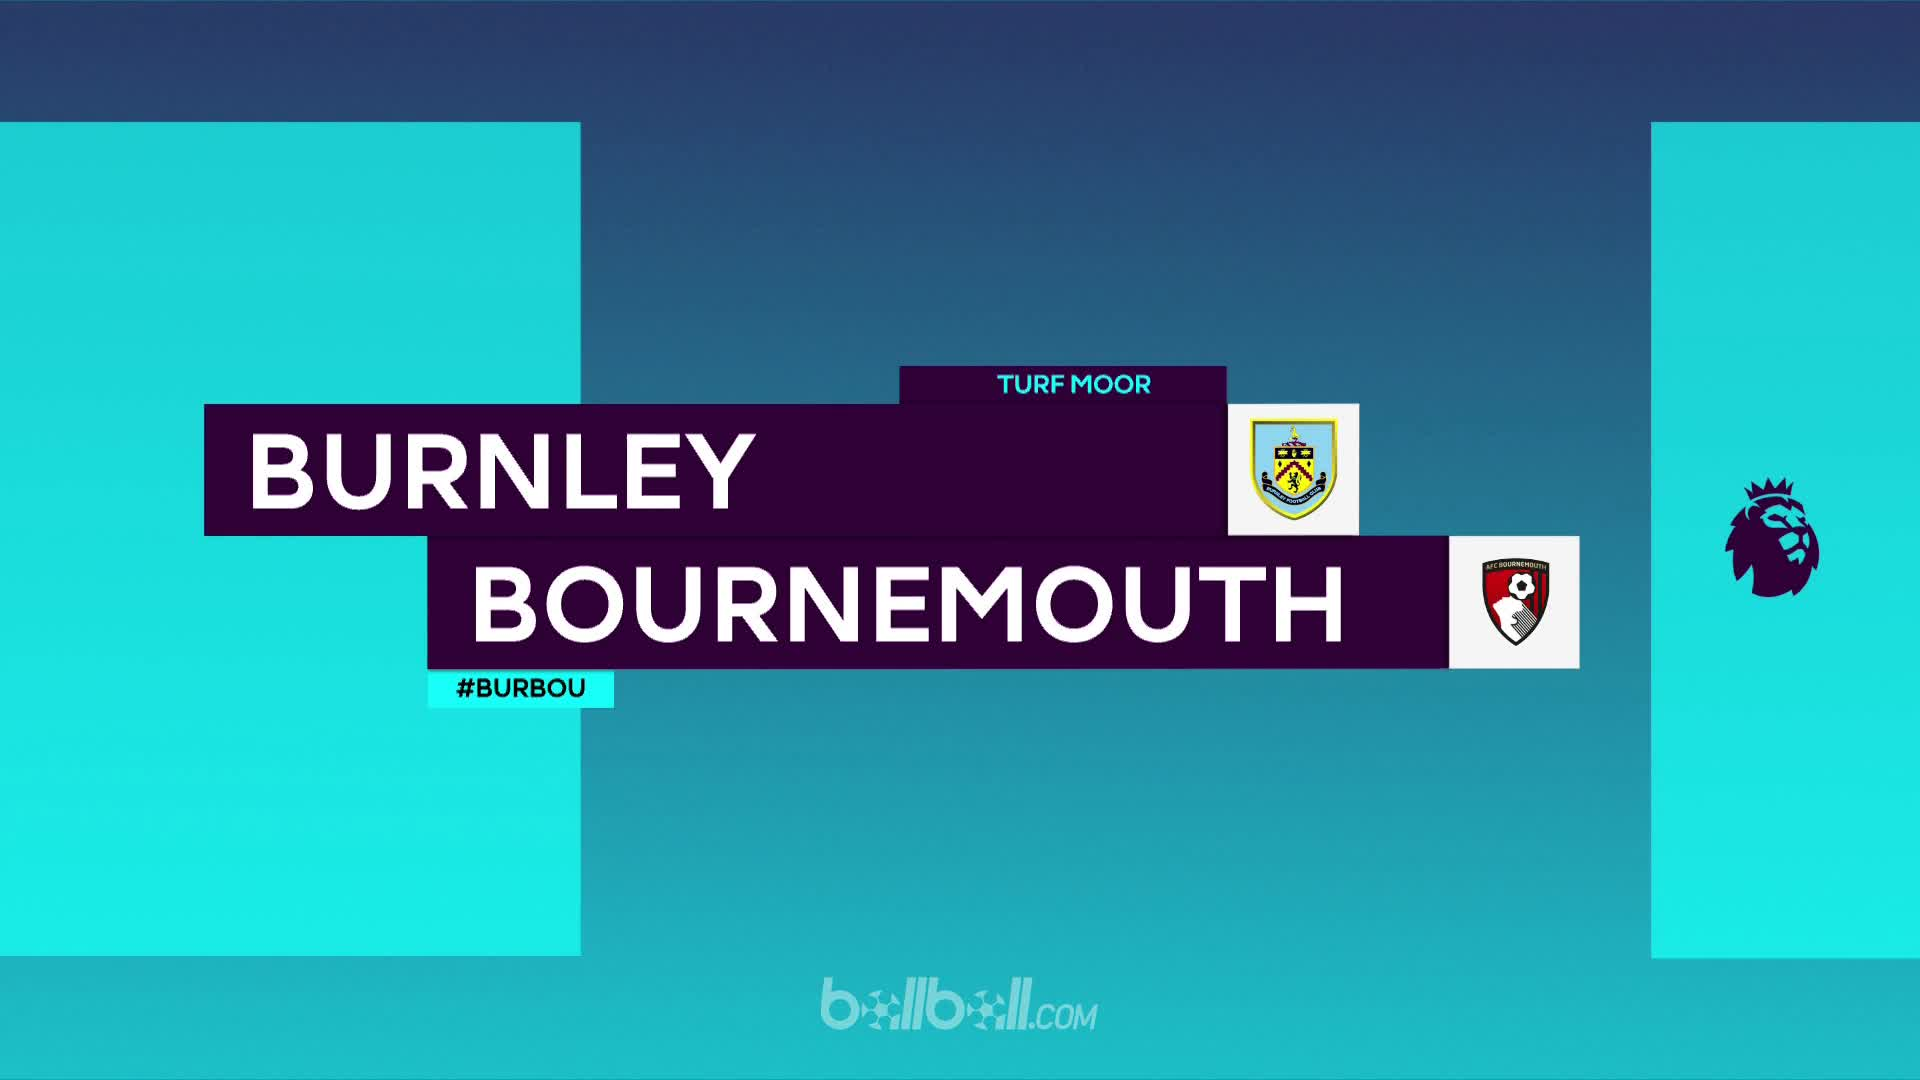 Burnley 1 - 2 AFC Bournemouth